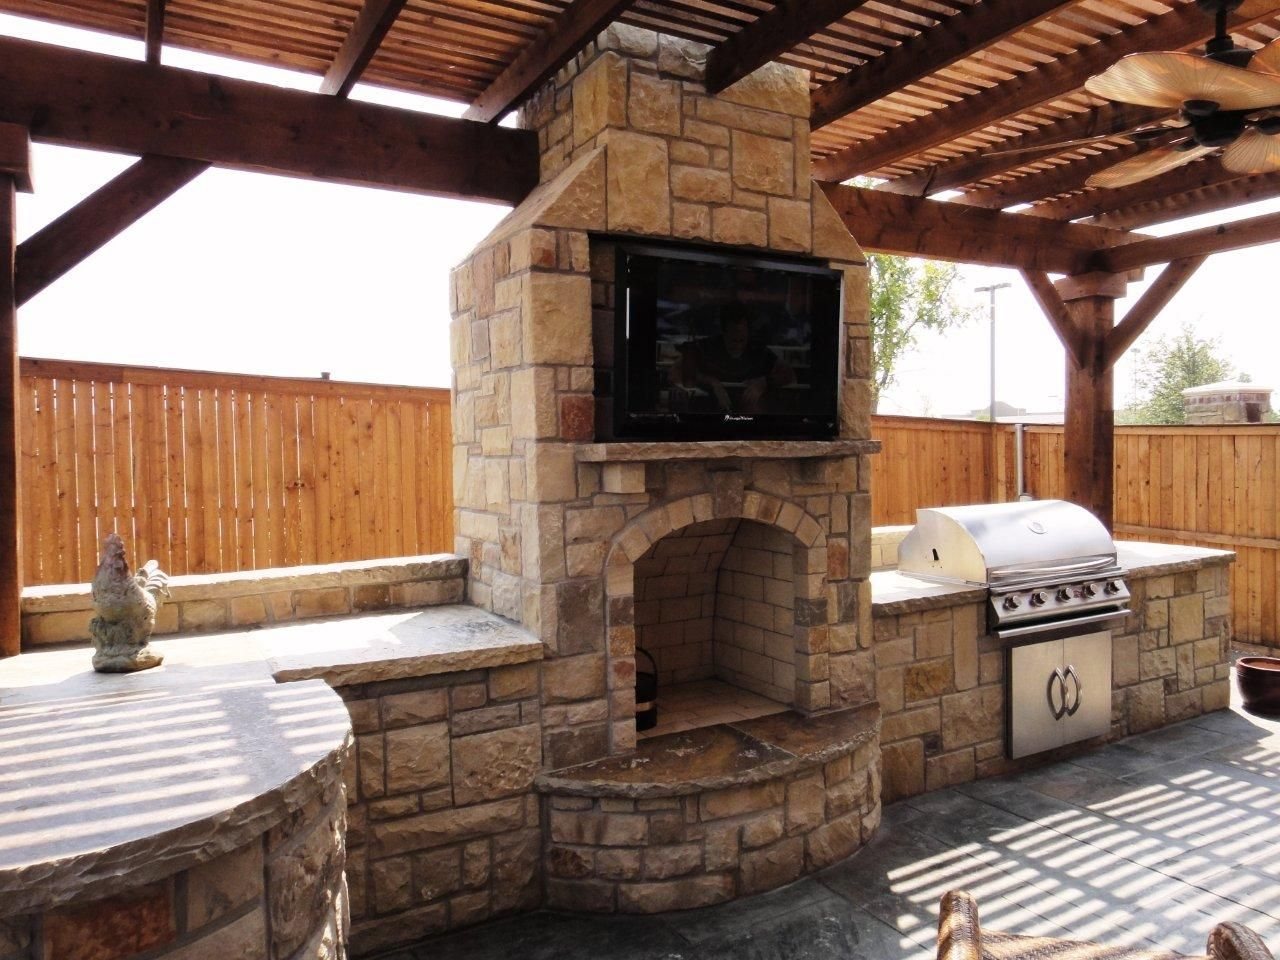 Dallas Kitchen Design Glamorous Outdoor Kitchen Supplies Stone Oven  Best Kitchen Design Ideas Design Decoration